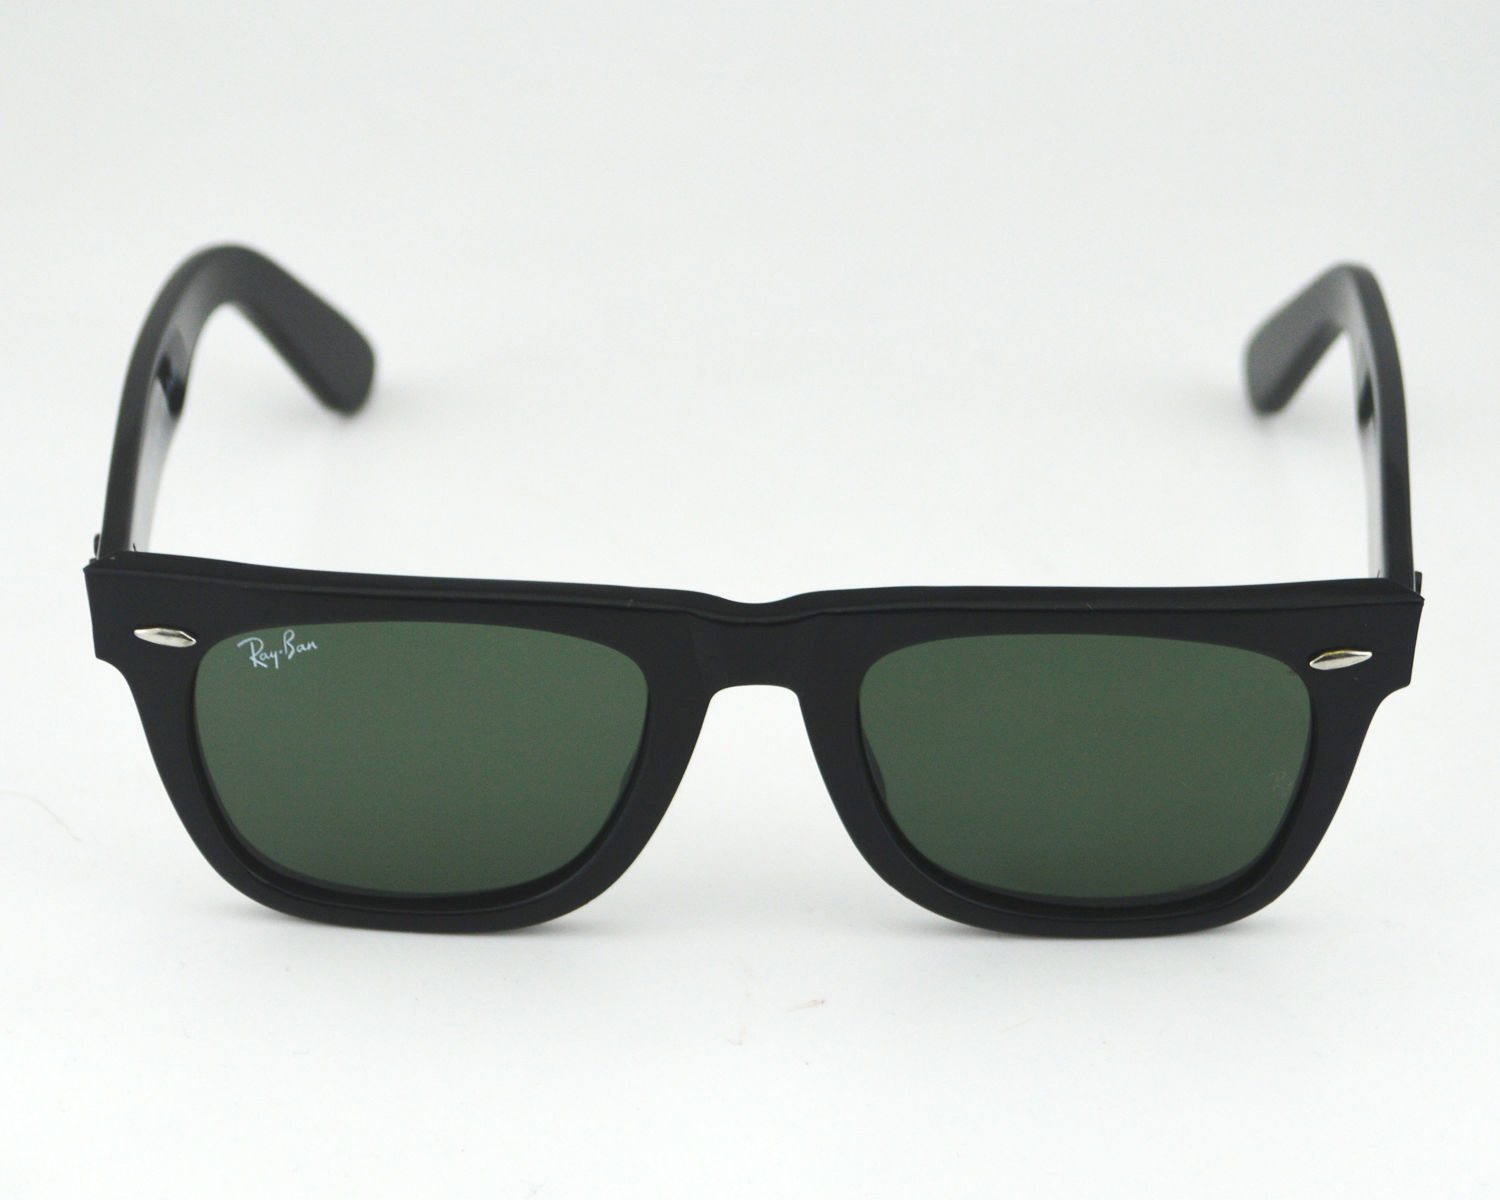 Ray-Ban RB2140 Original Wayfarer Classic 901 Black Frame  Green Classic  G-15 Lens Male Sunglasses 50mm 97002fb7da